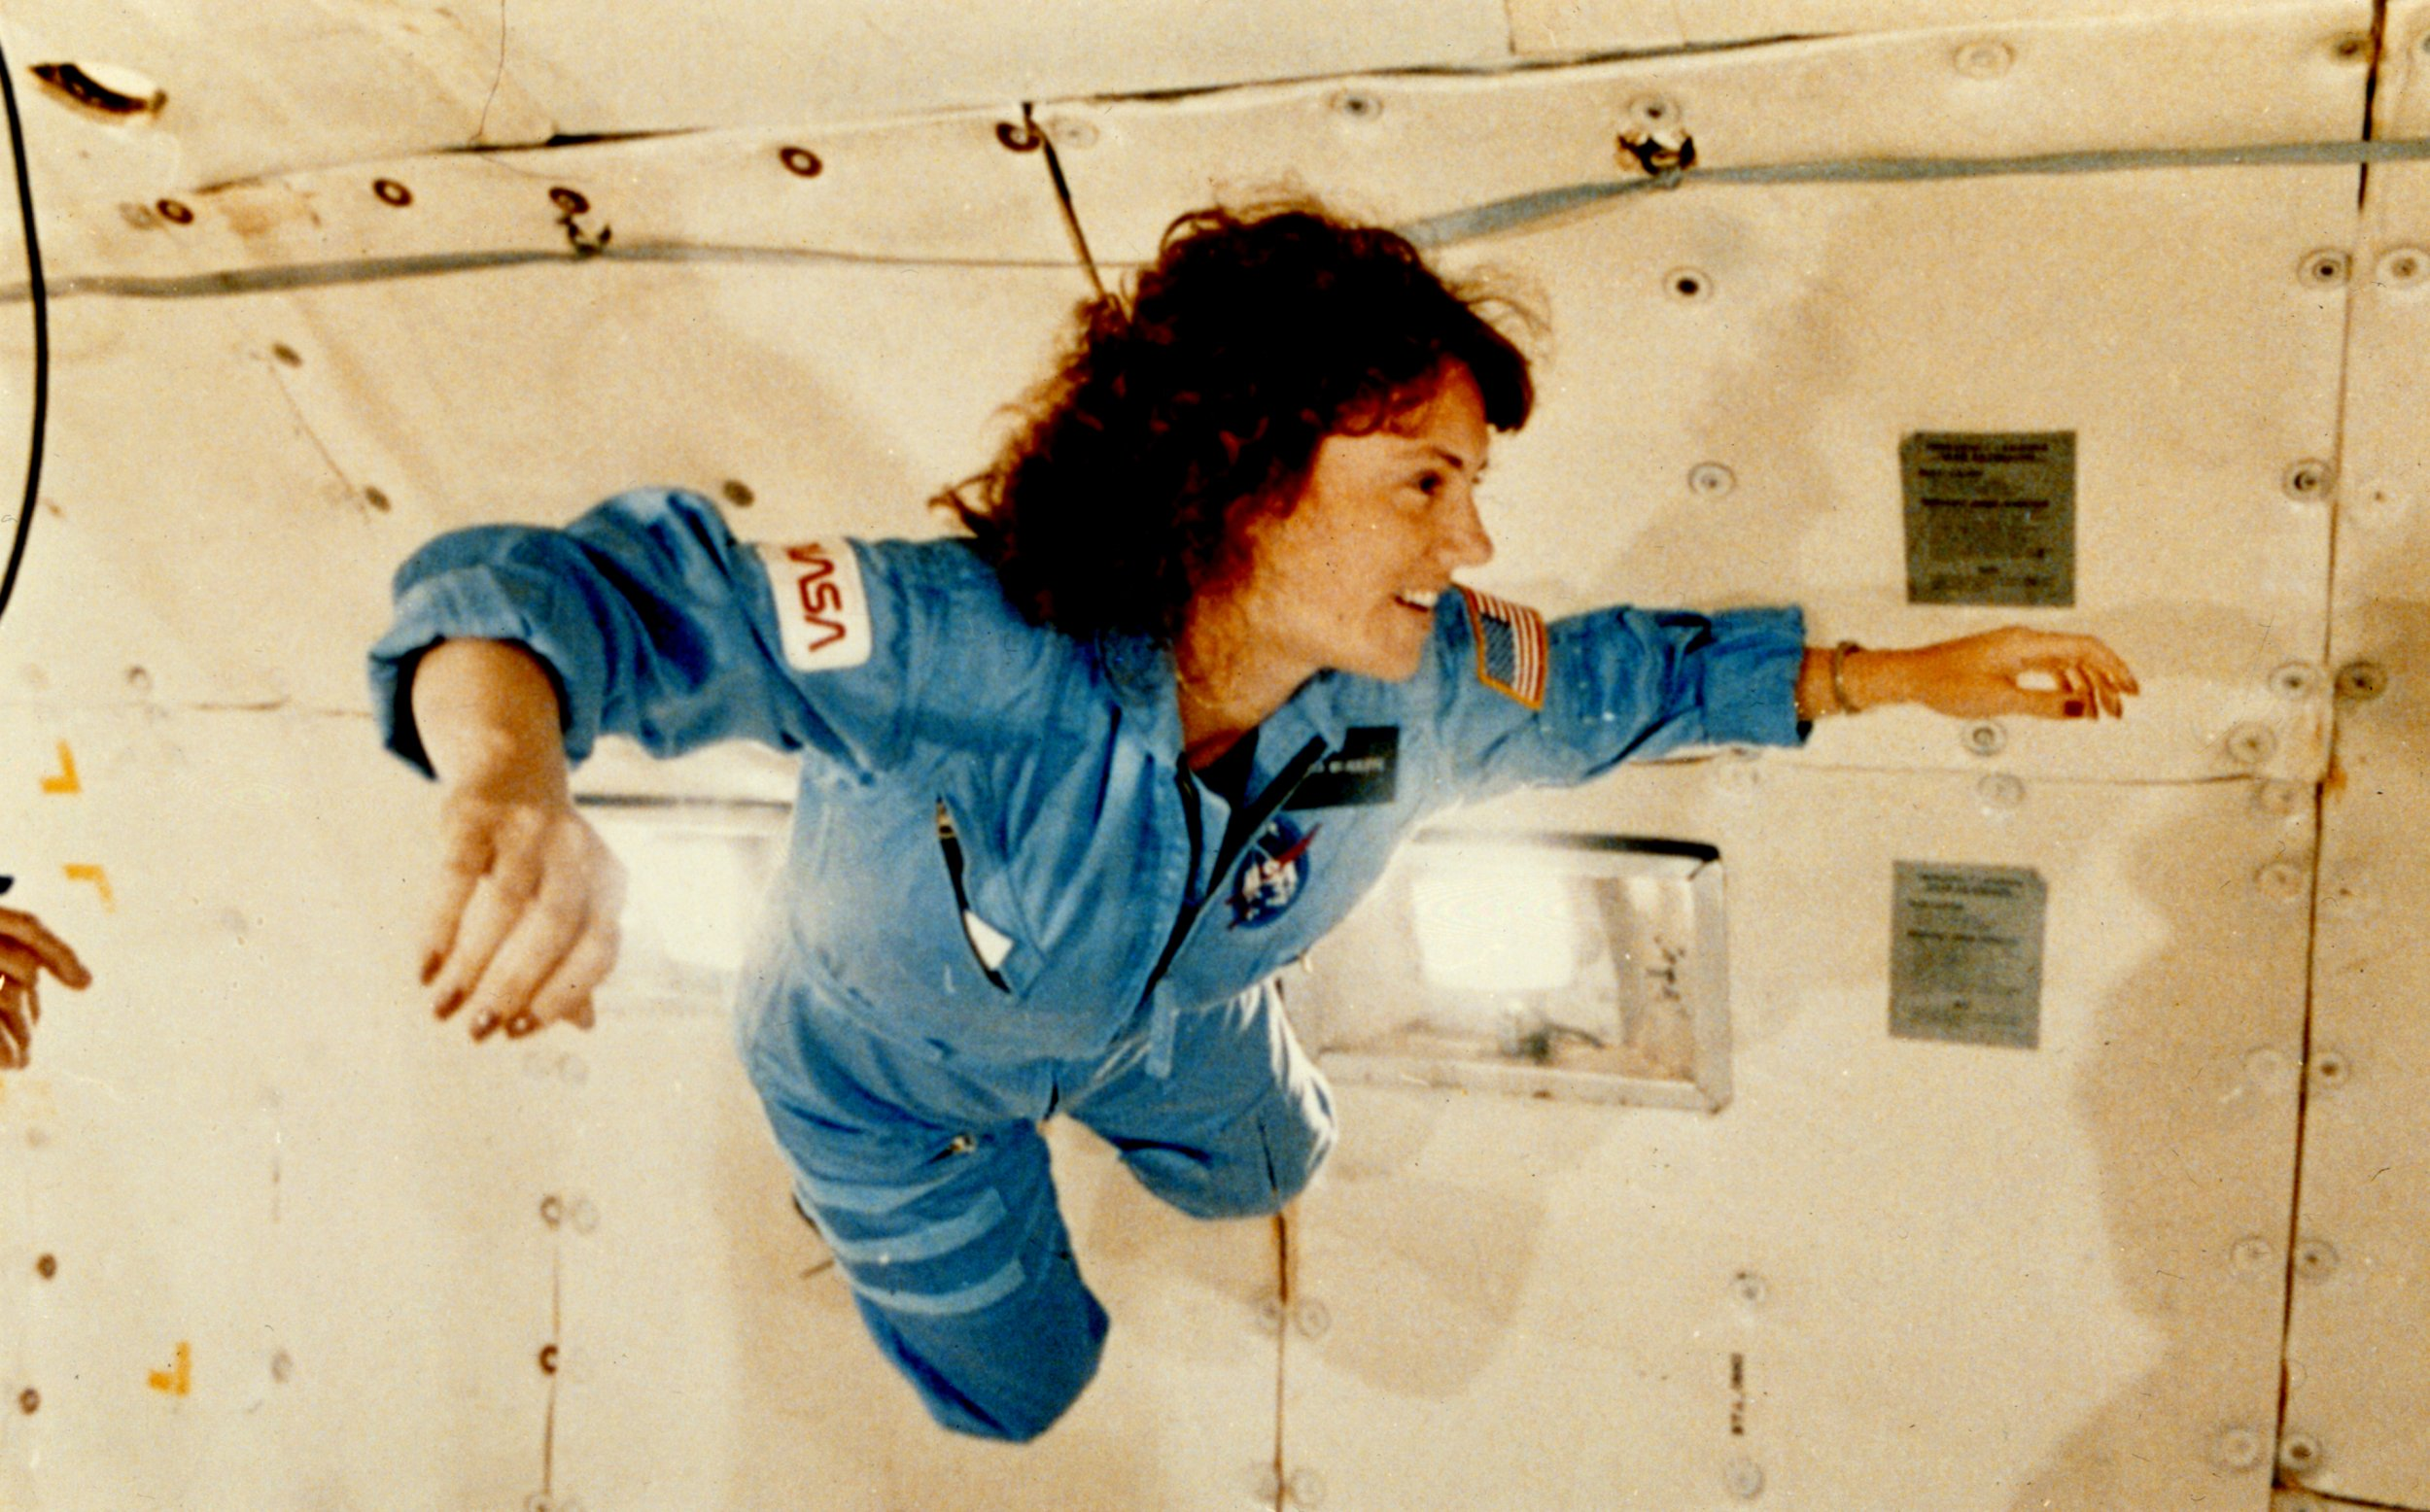 space shuttle challenger explosion teacher - photo #4